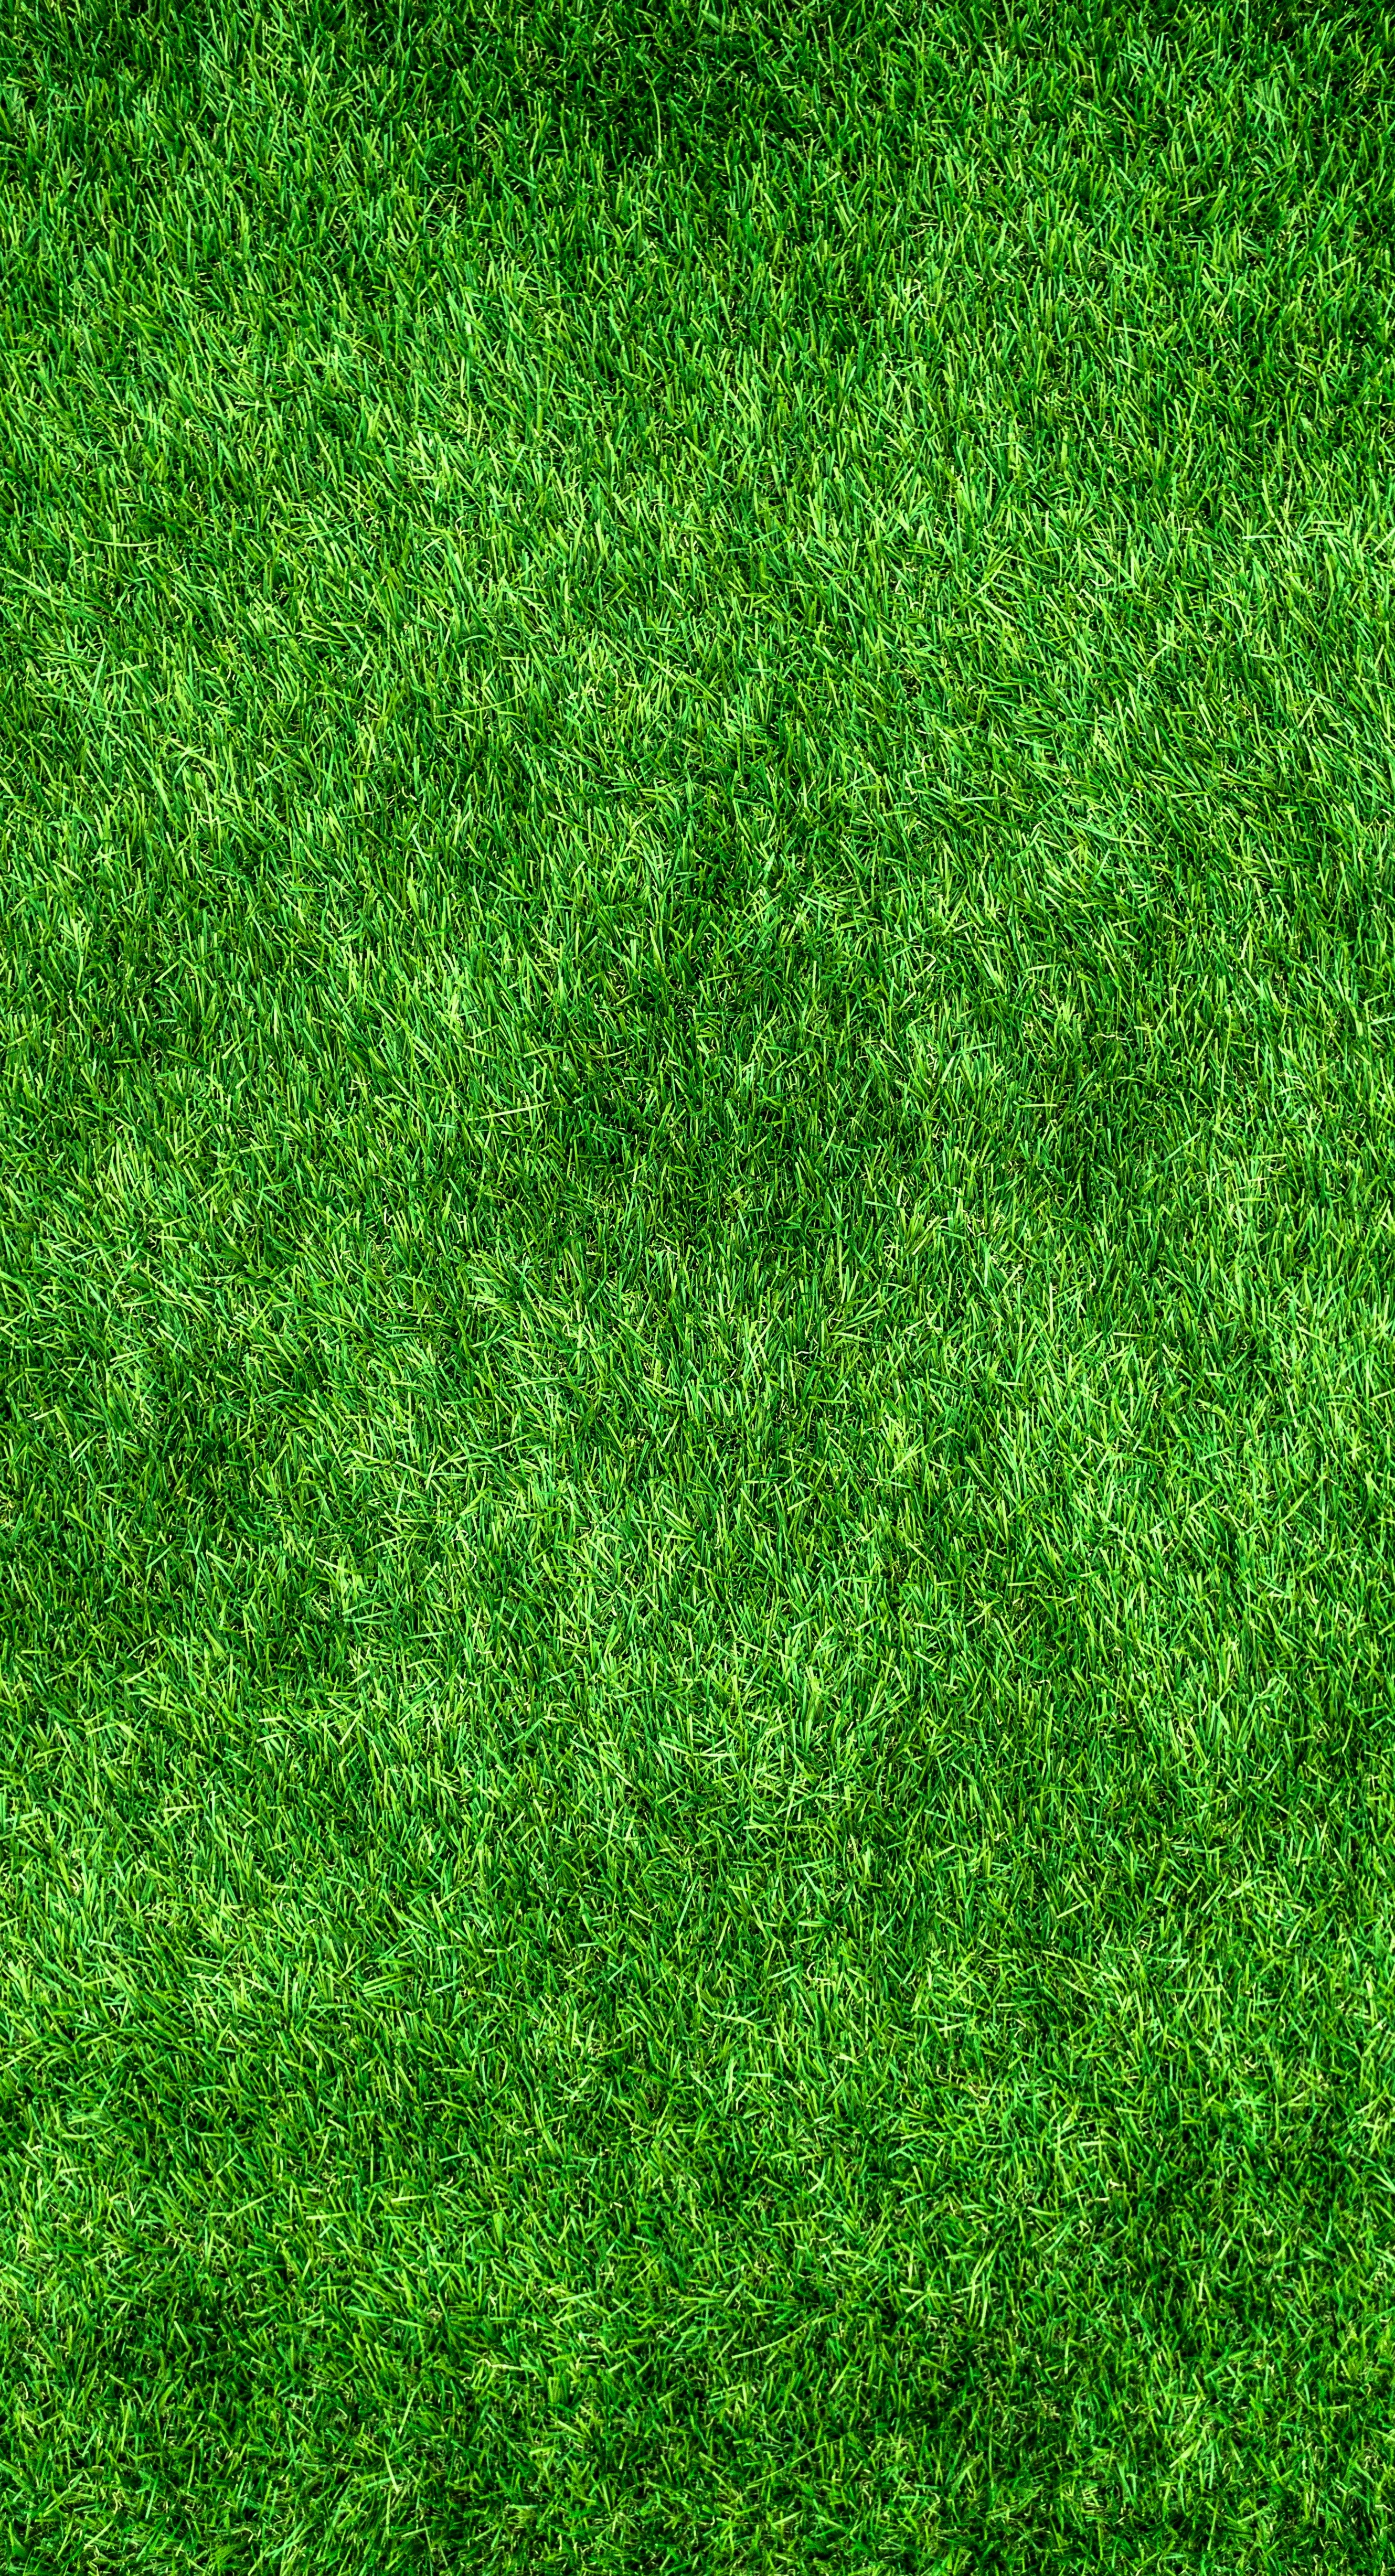 144047 download wallpaper Textures, Texture, Lawn, Grass, Thick, Surface screensavers and pictures for free